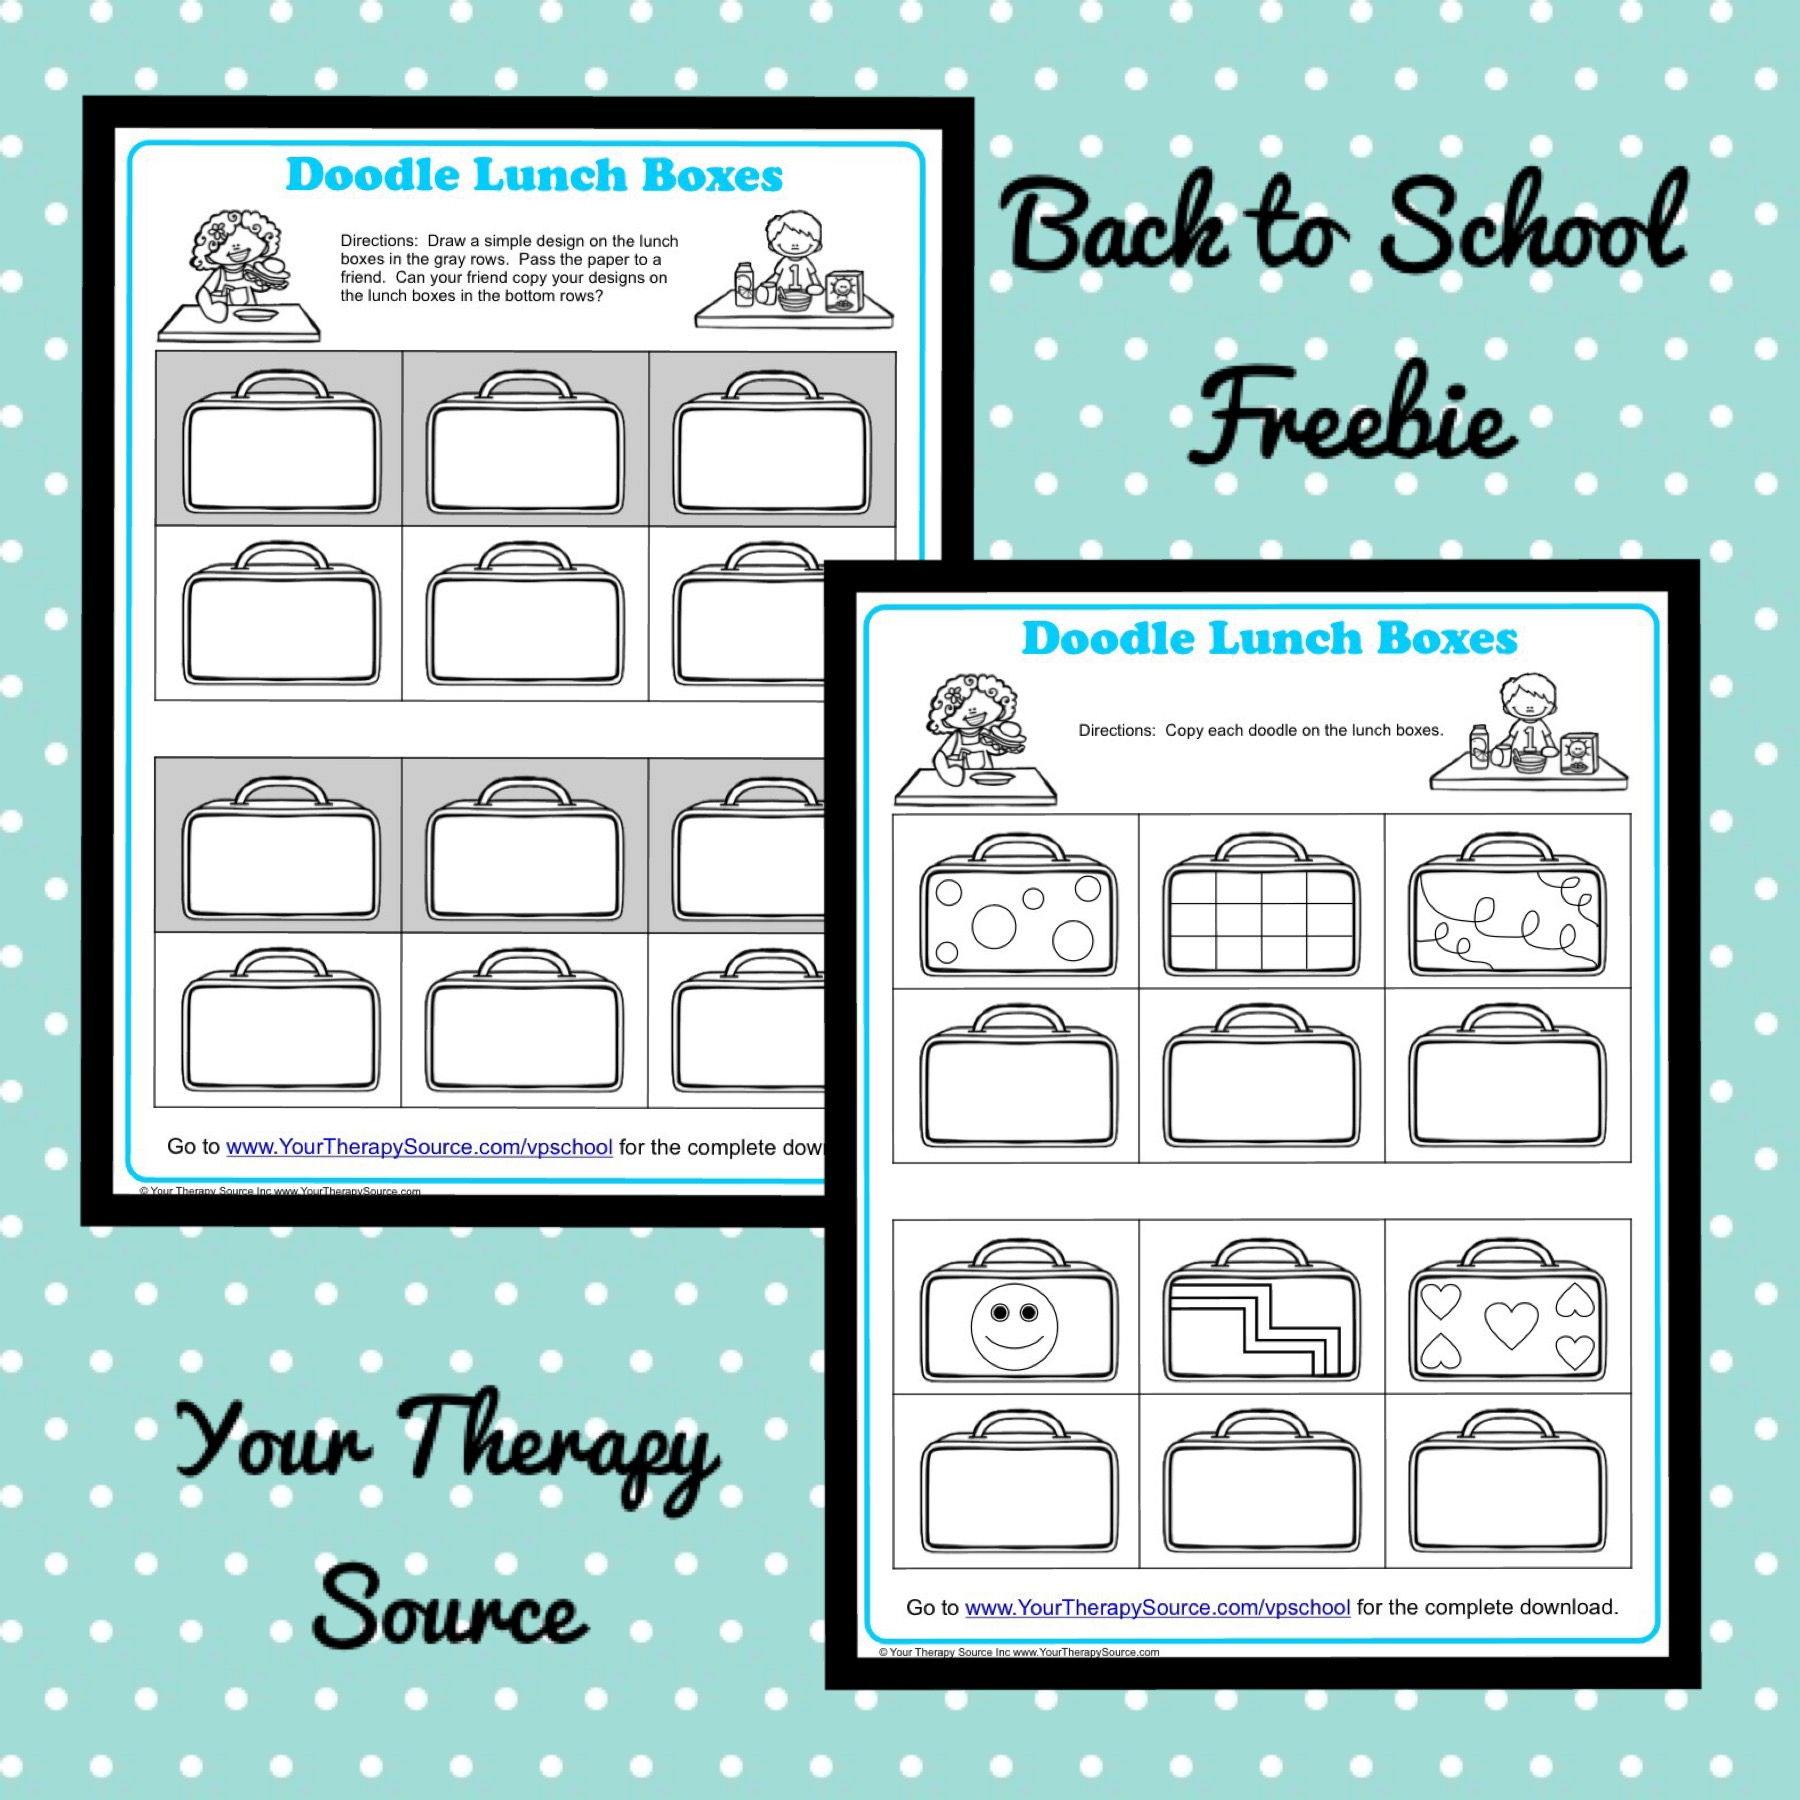 Back to School Freebie fromhttps://yourtherapysource.com/vpschoolfreebie